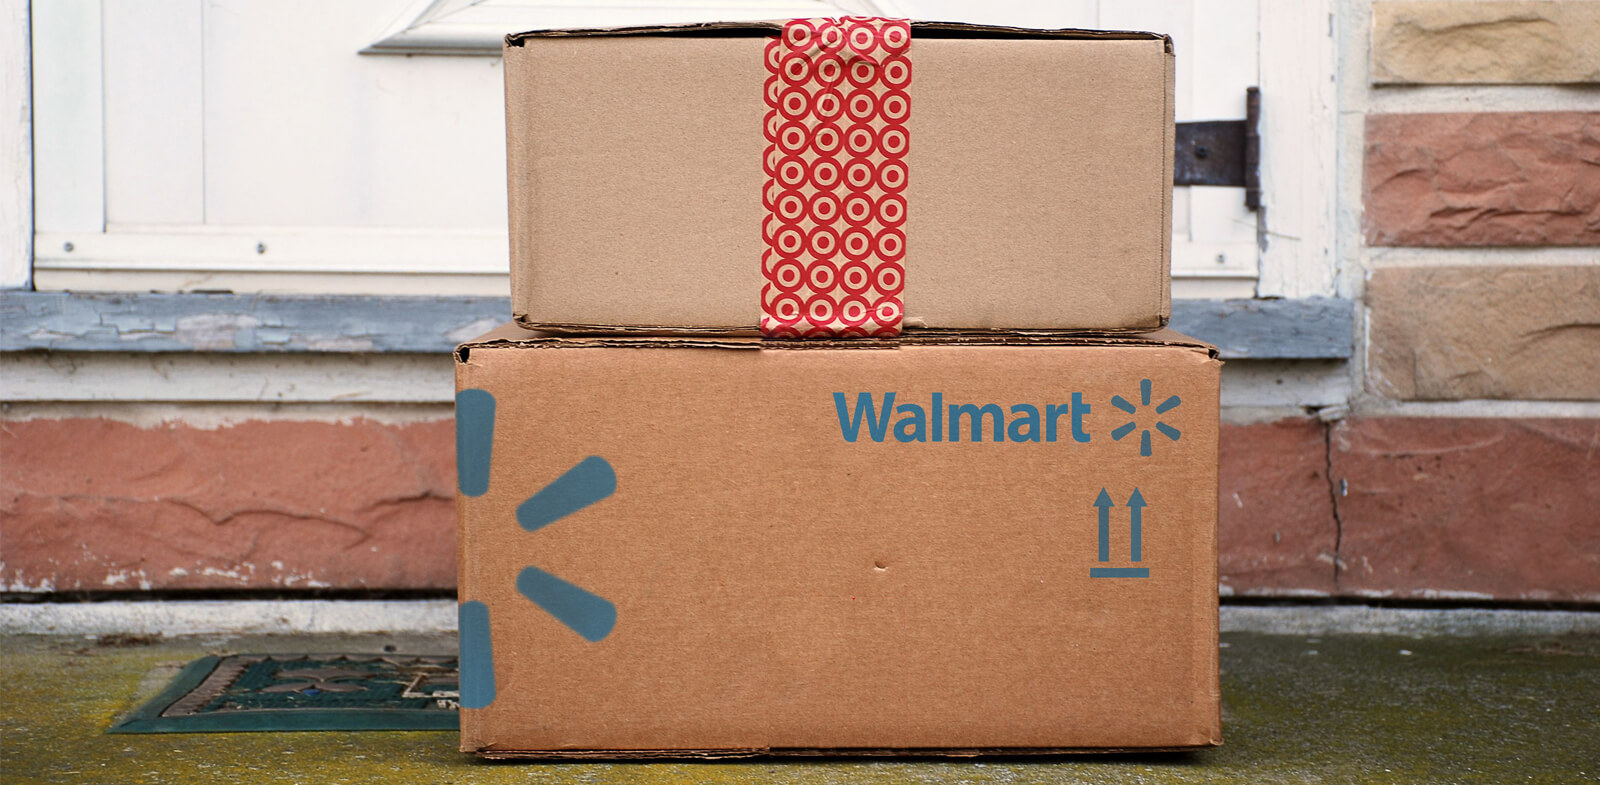 Target and Walmart Set to Take on Amazon's Prime Day